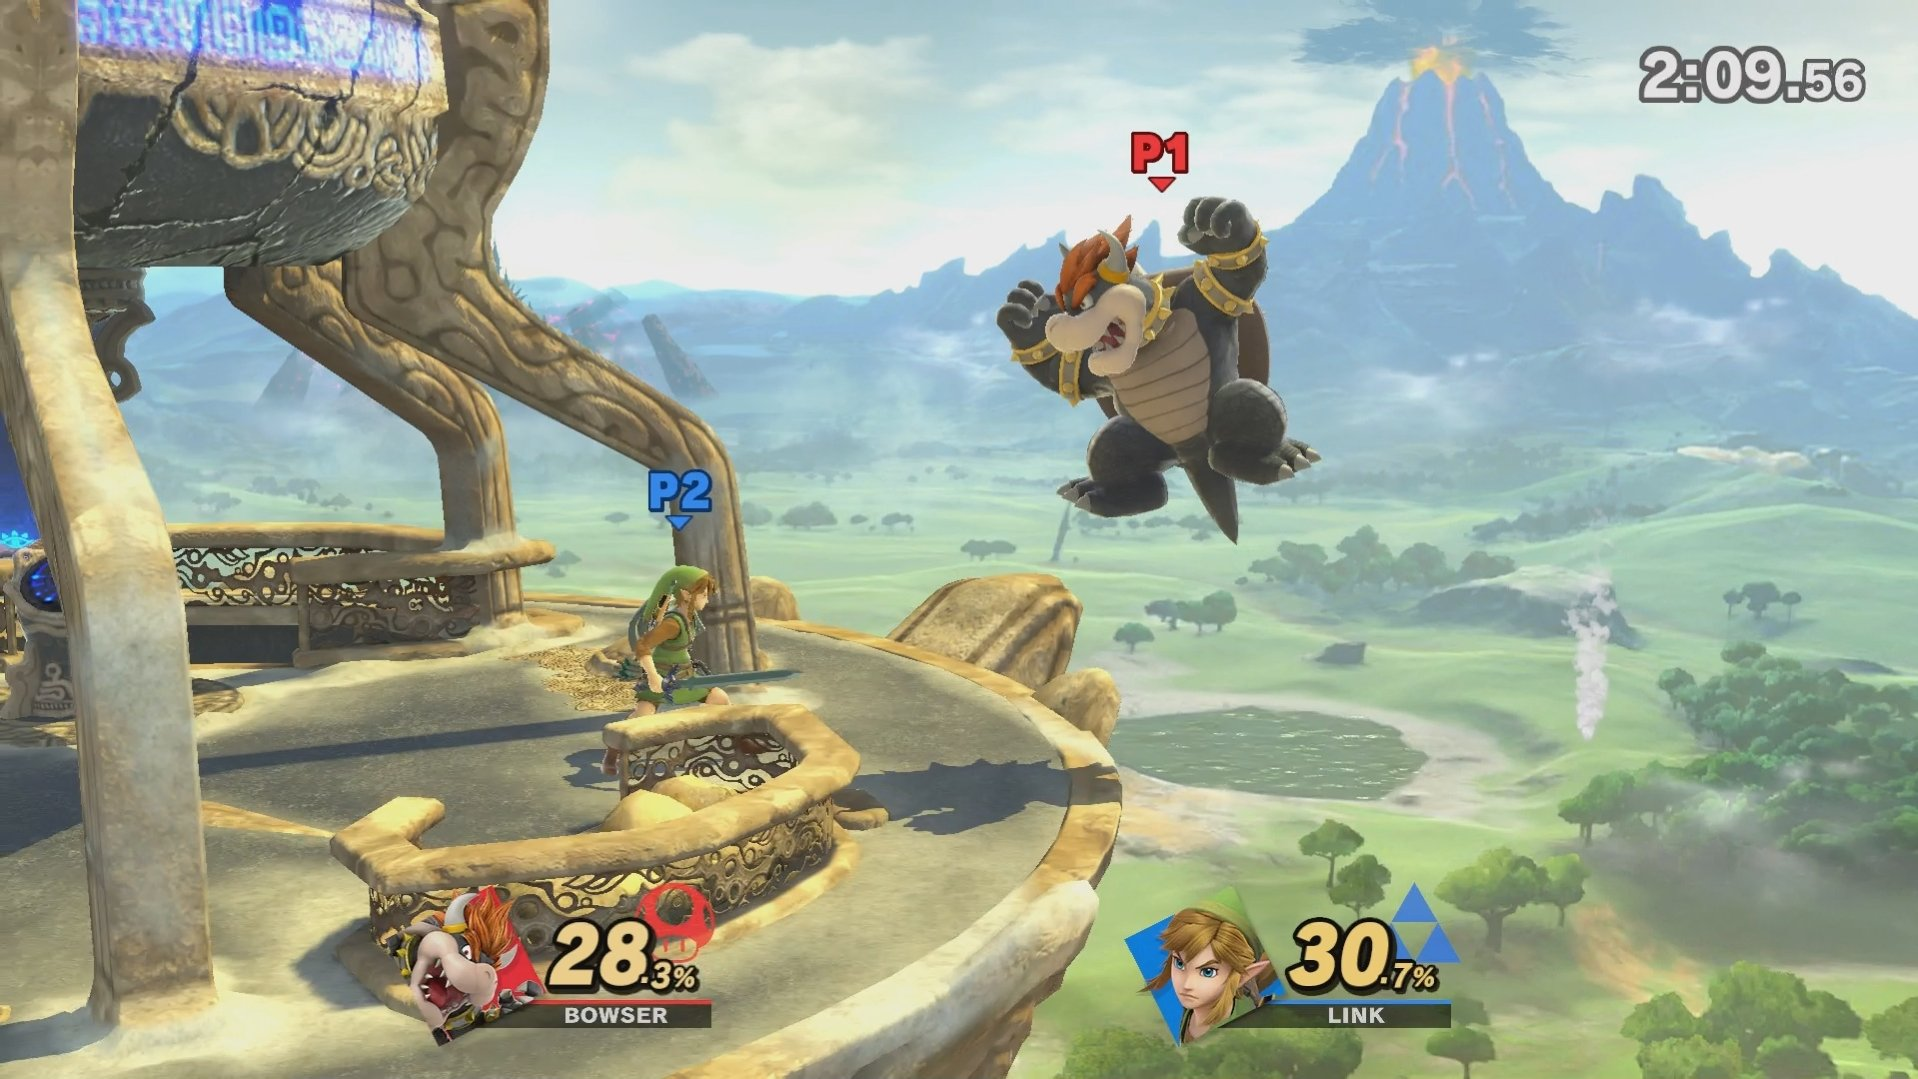 Heavyweights like Bowser have been given a speed boost © Nintendo